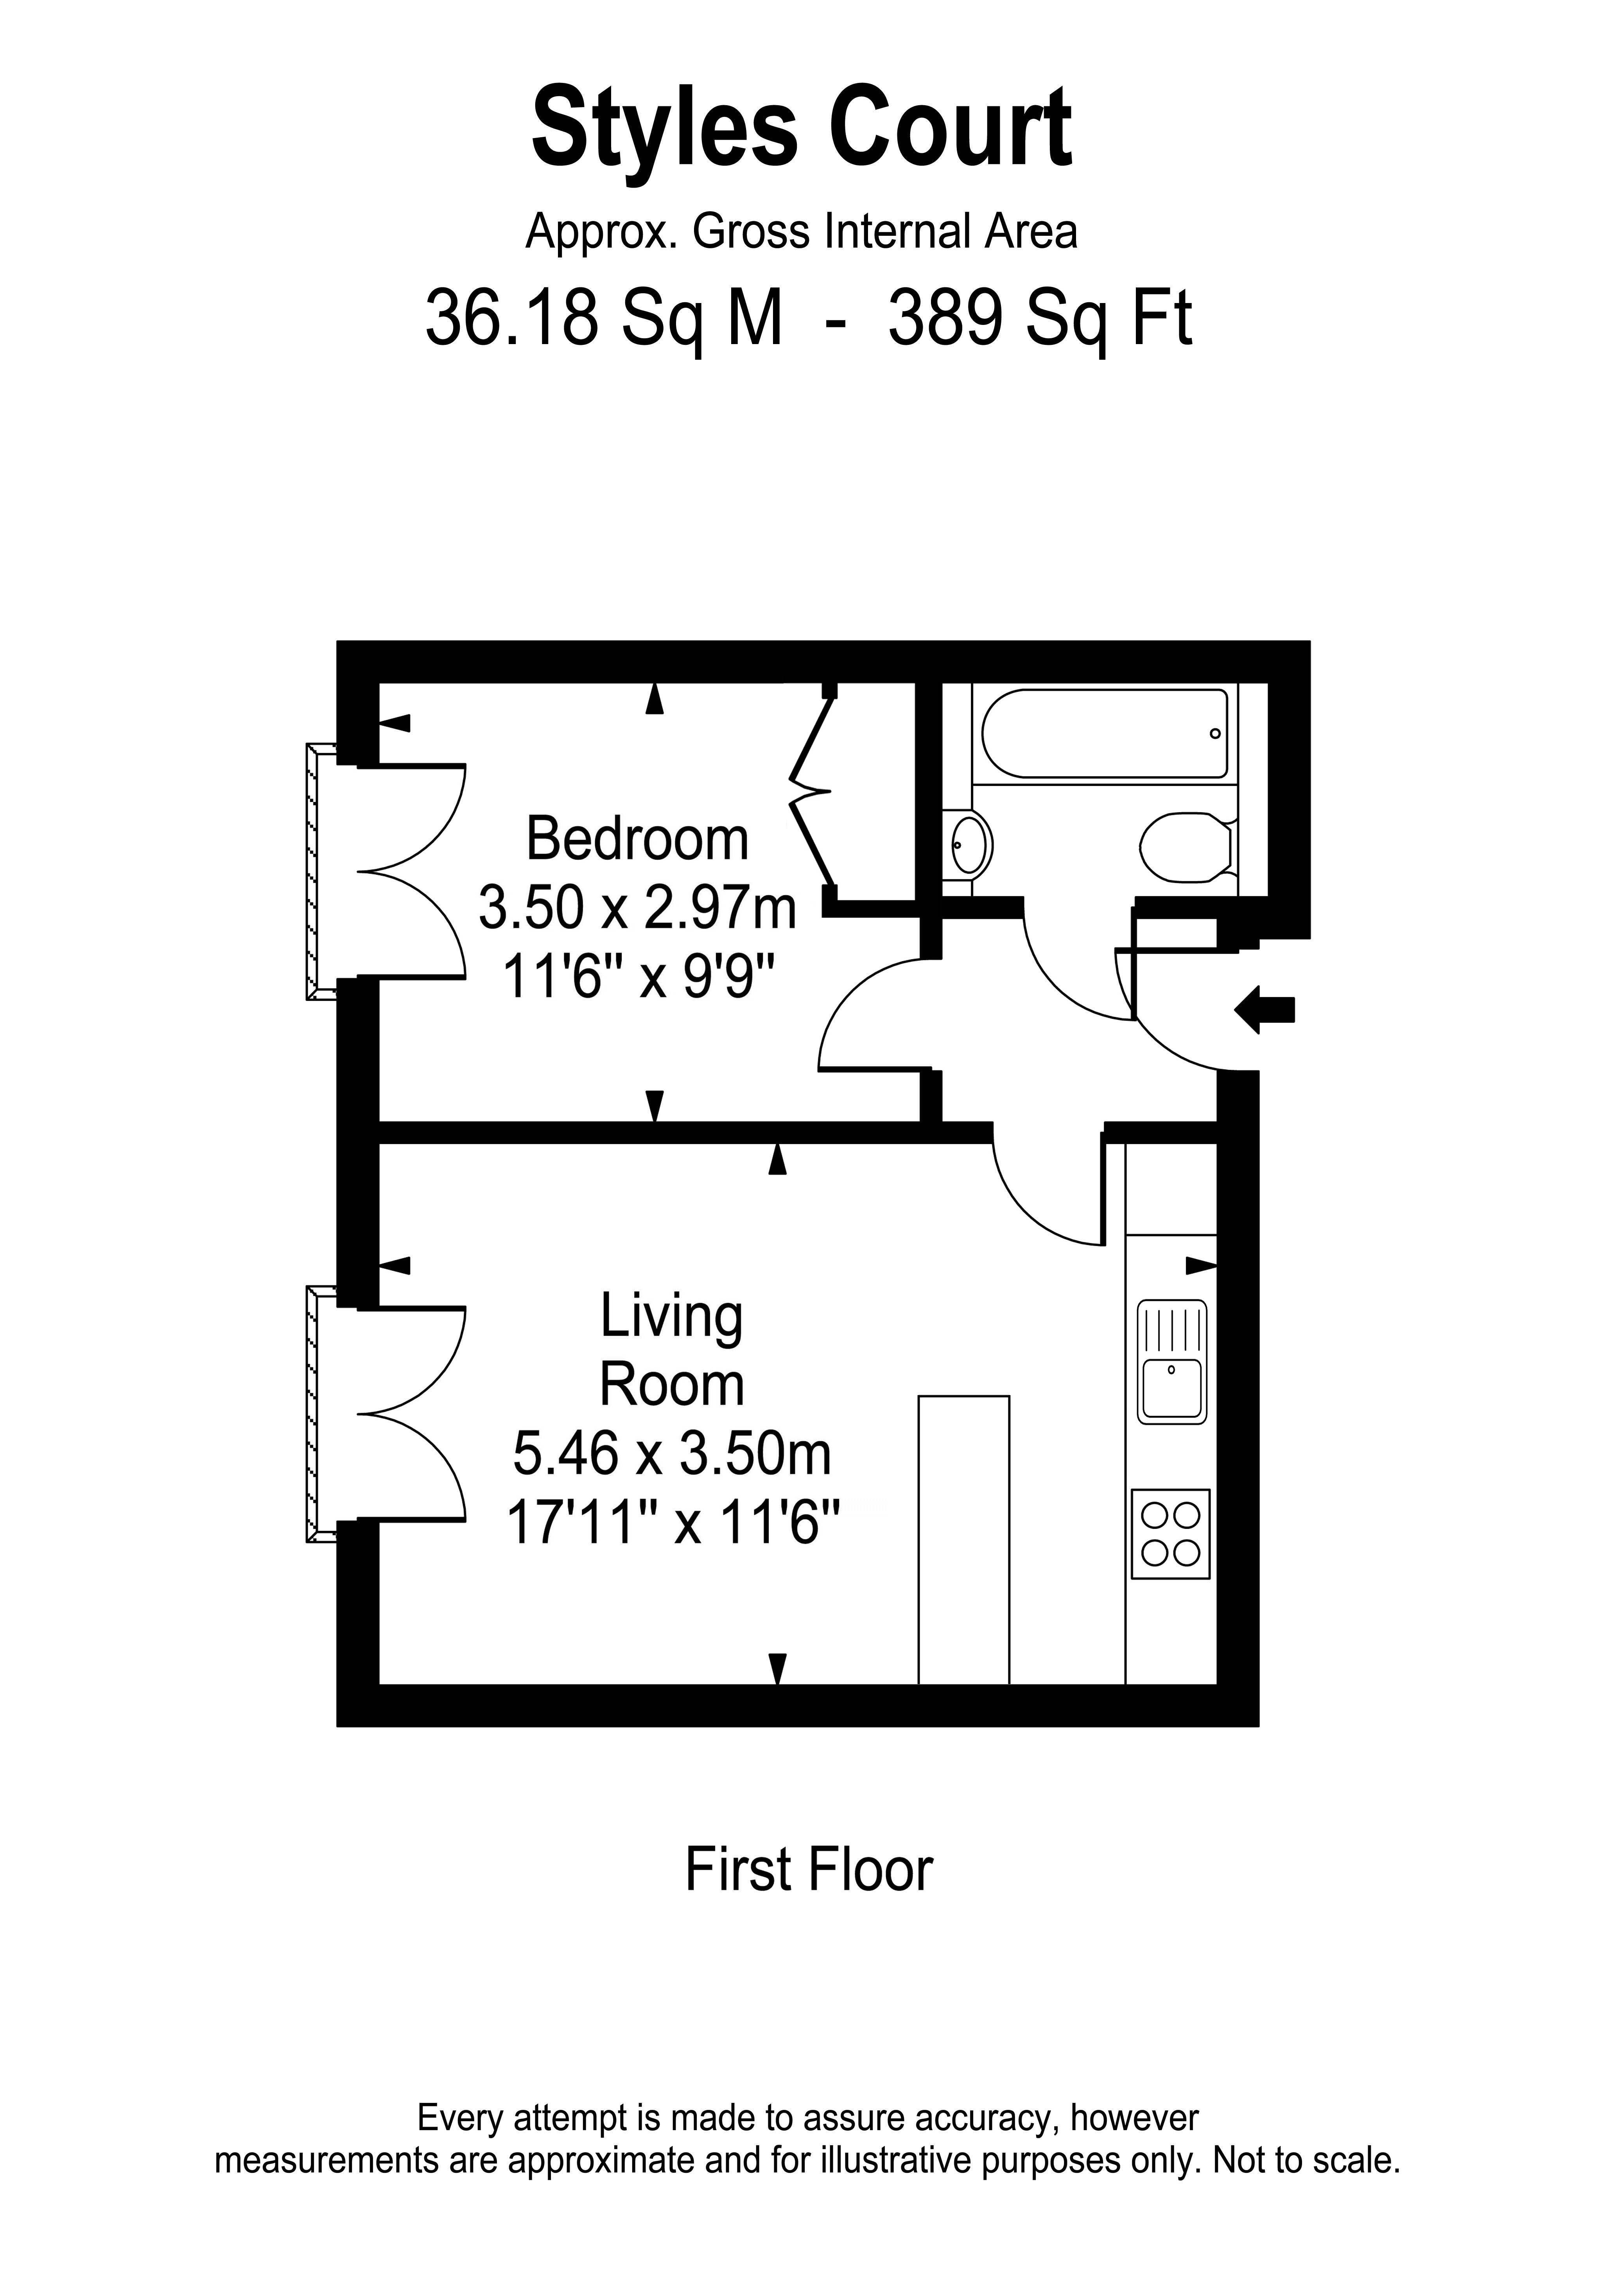 Floorplans For Styles Court, East Molesey